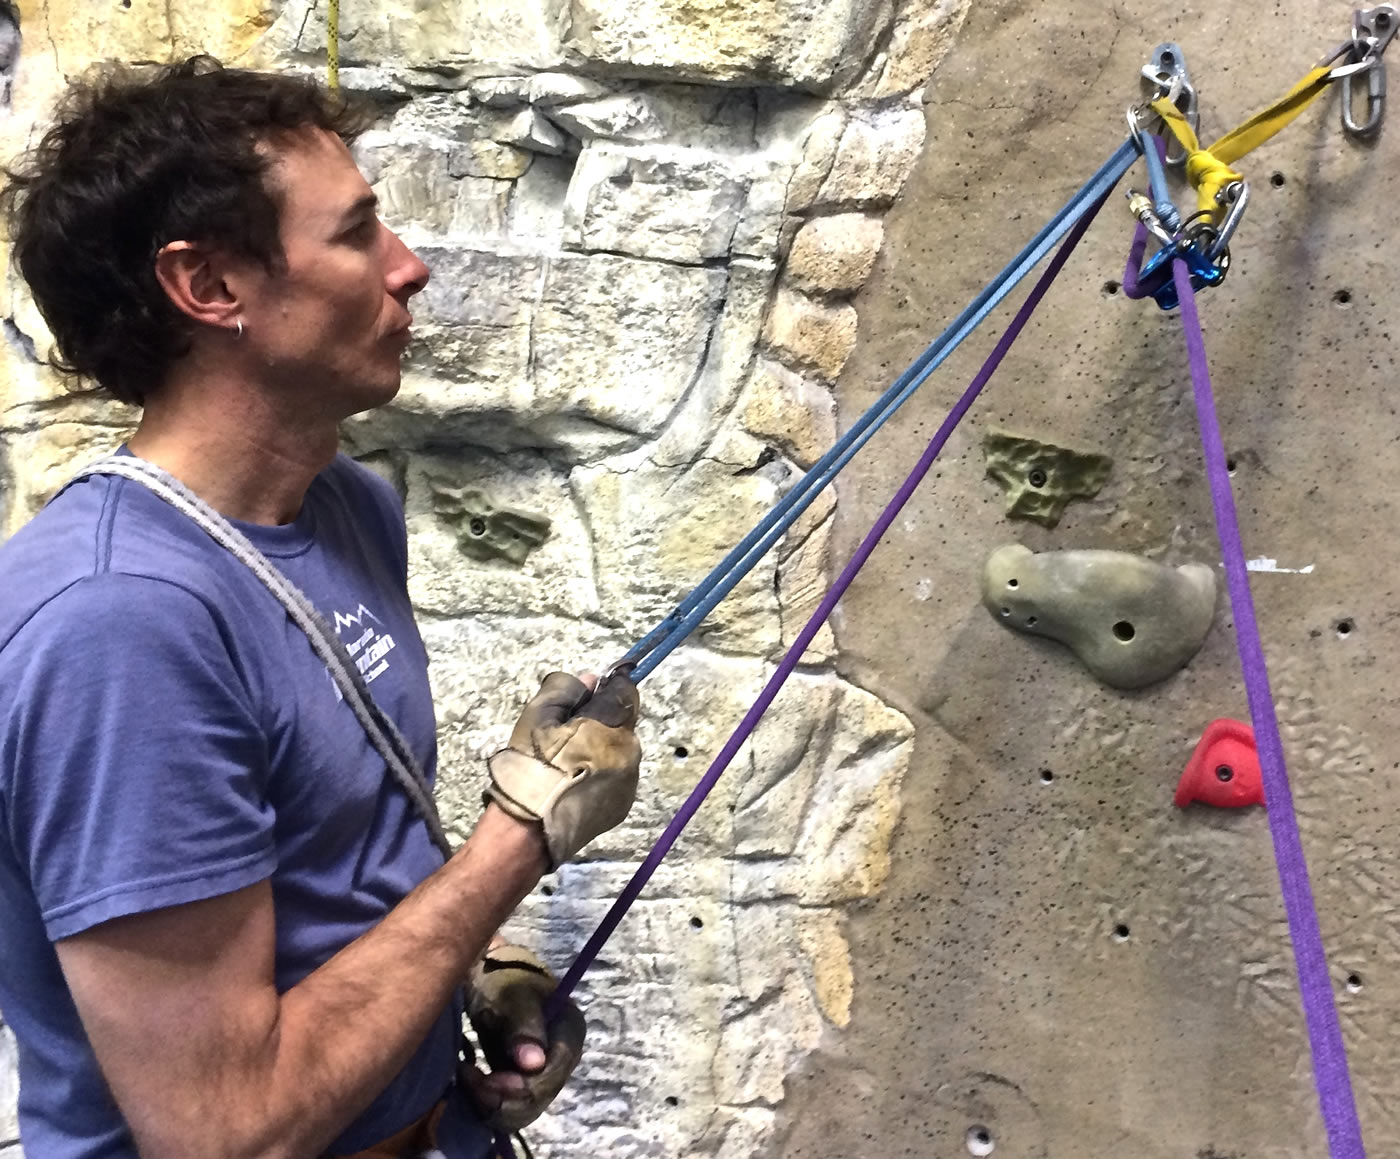 Mike Lewis demonstrates how to lower a climber while in guide mode with the DMM Pivot: The belayer can set up a sling to pull back the carabiner on the rope and release the friction on the brake-end of the rope, allowing it to slide through the device while maintaining control with the brake hand. It may be necessary to use a backup on the brake-side of the rope to ensure control.